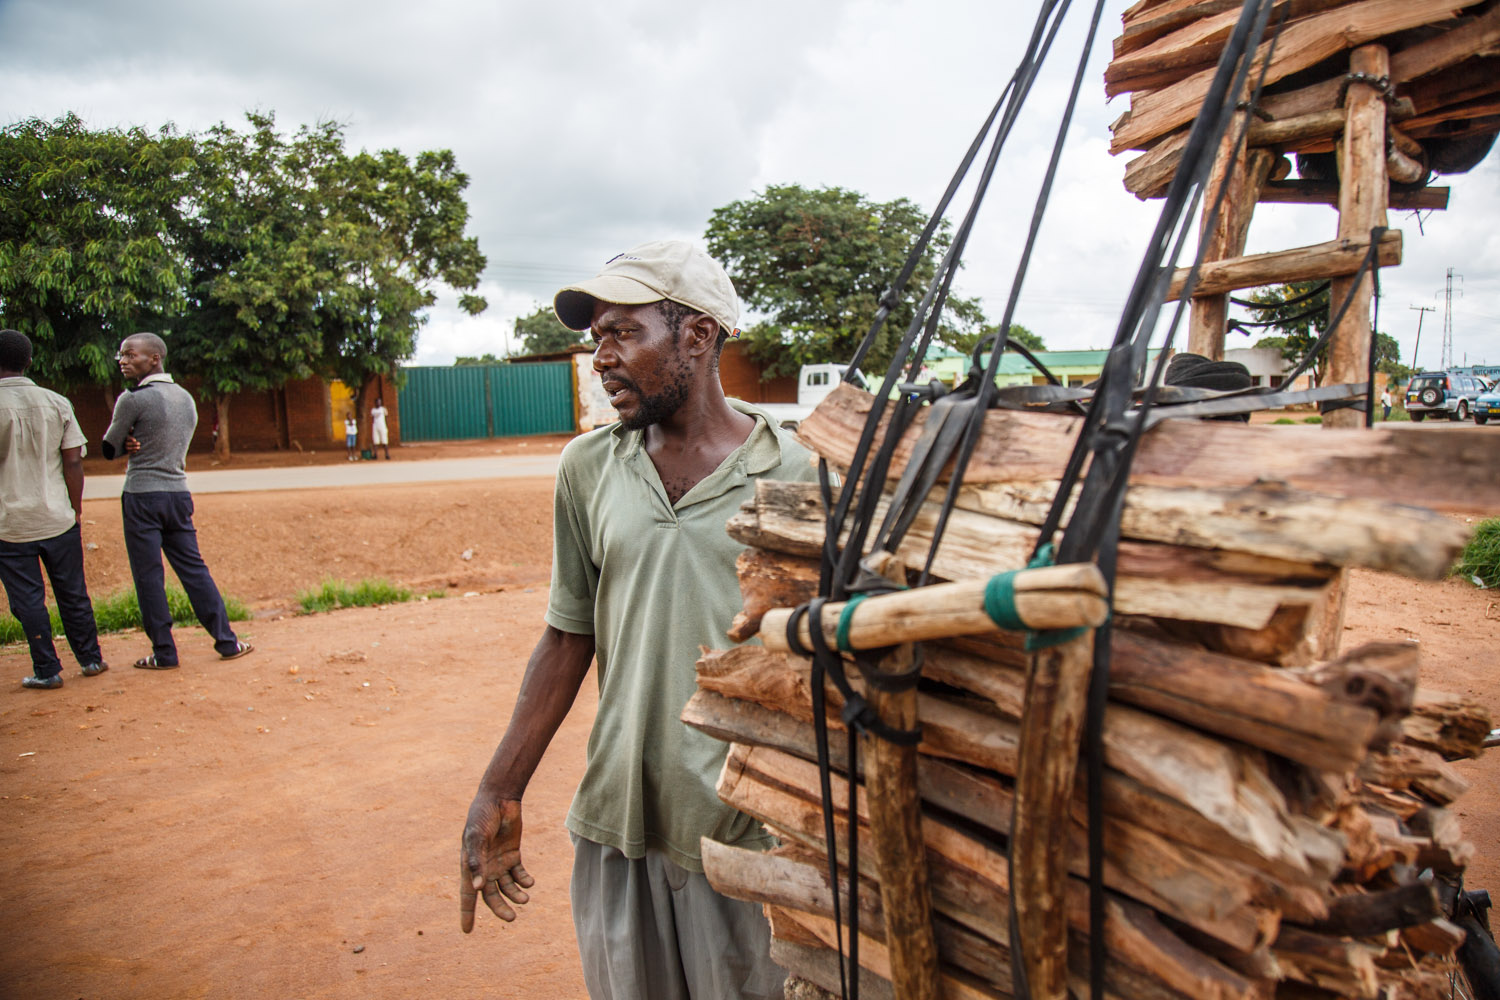 Road-side sale of firewood. Malawi loses nearly 520 square kilometres of its forests annually due to illegal logging.